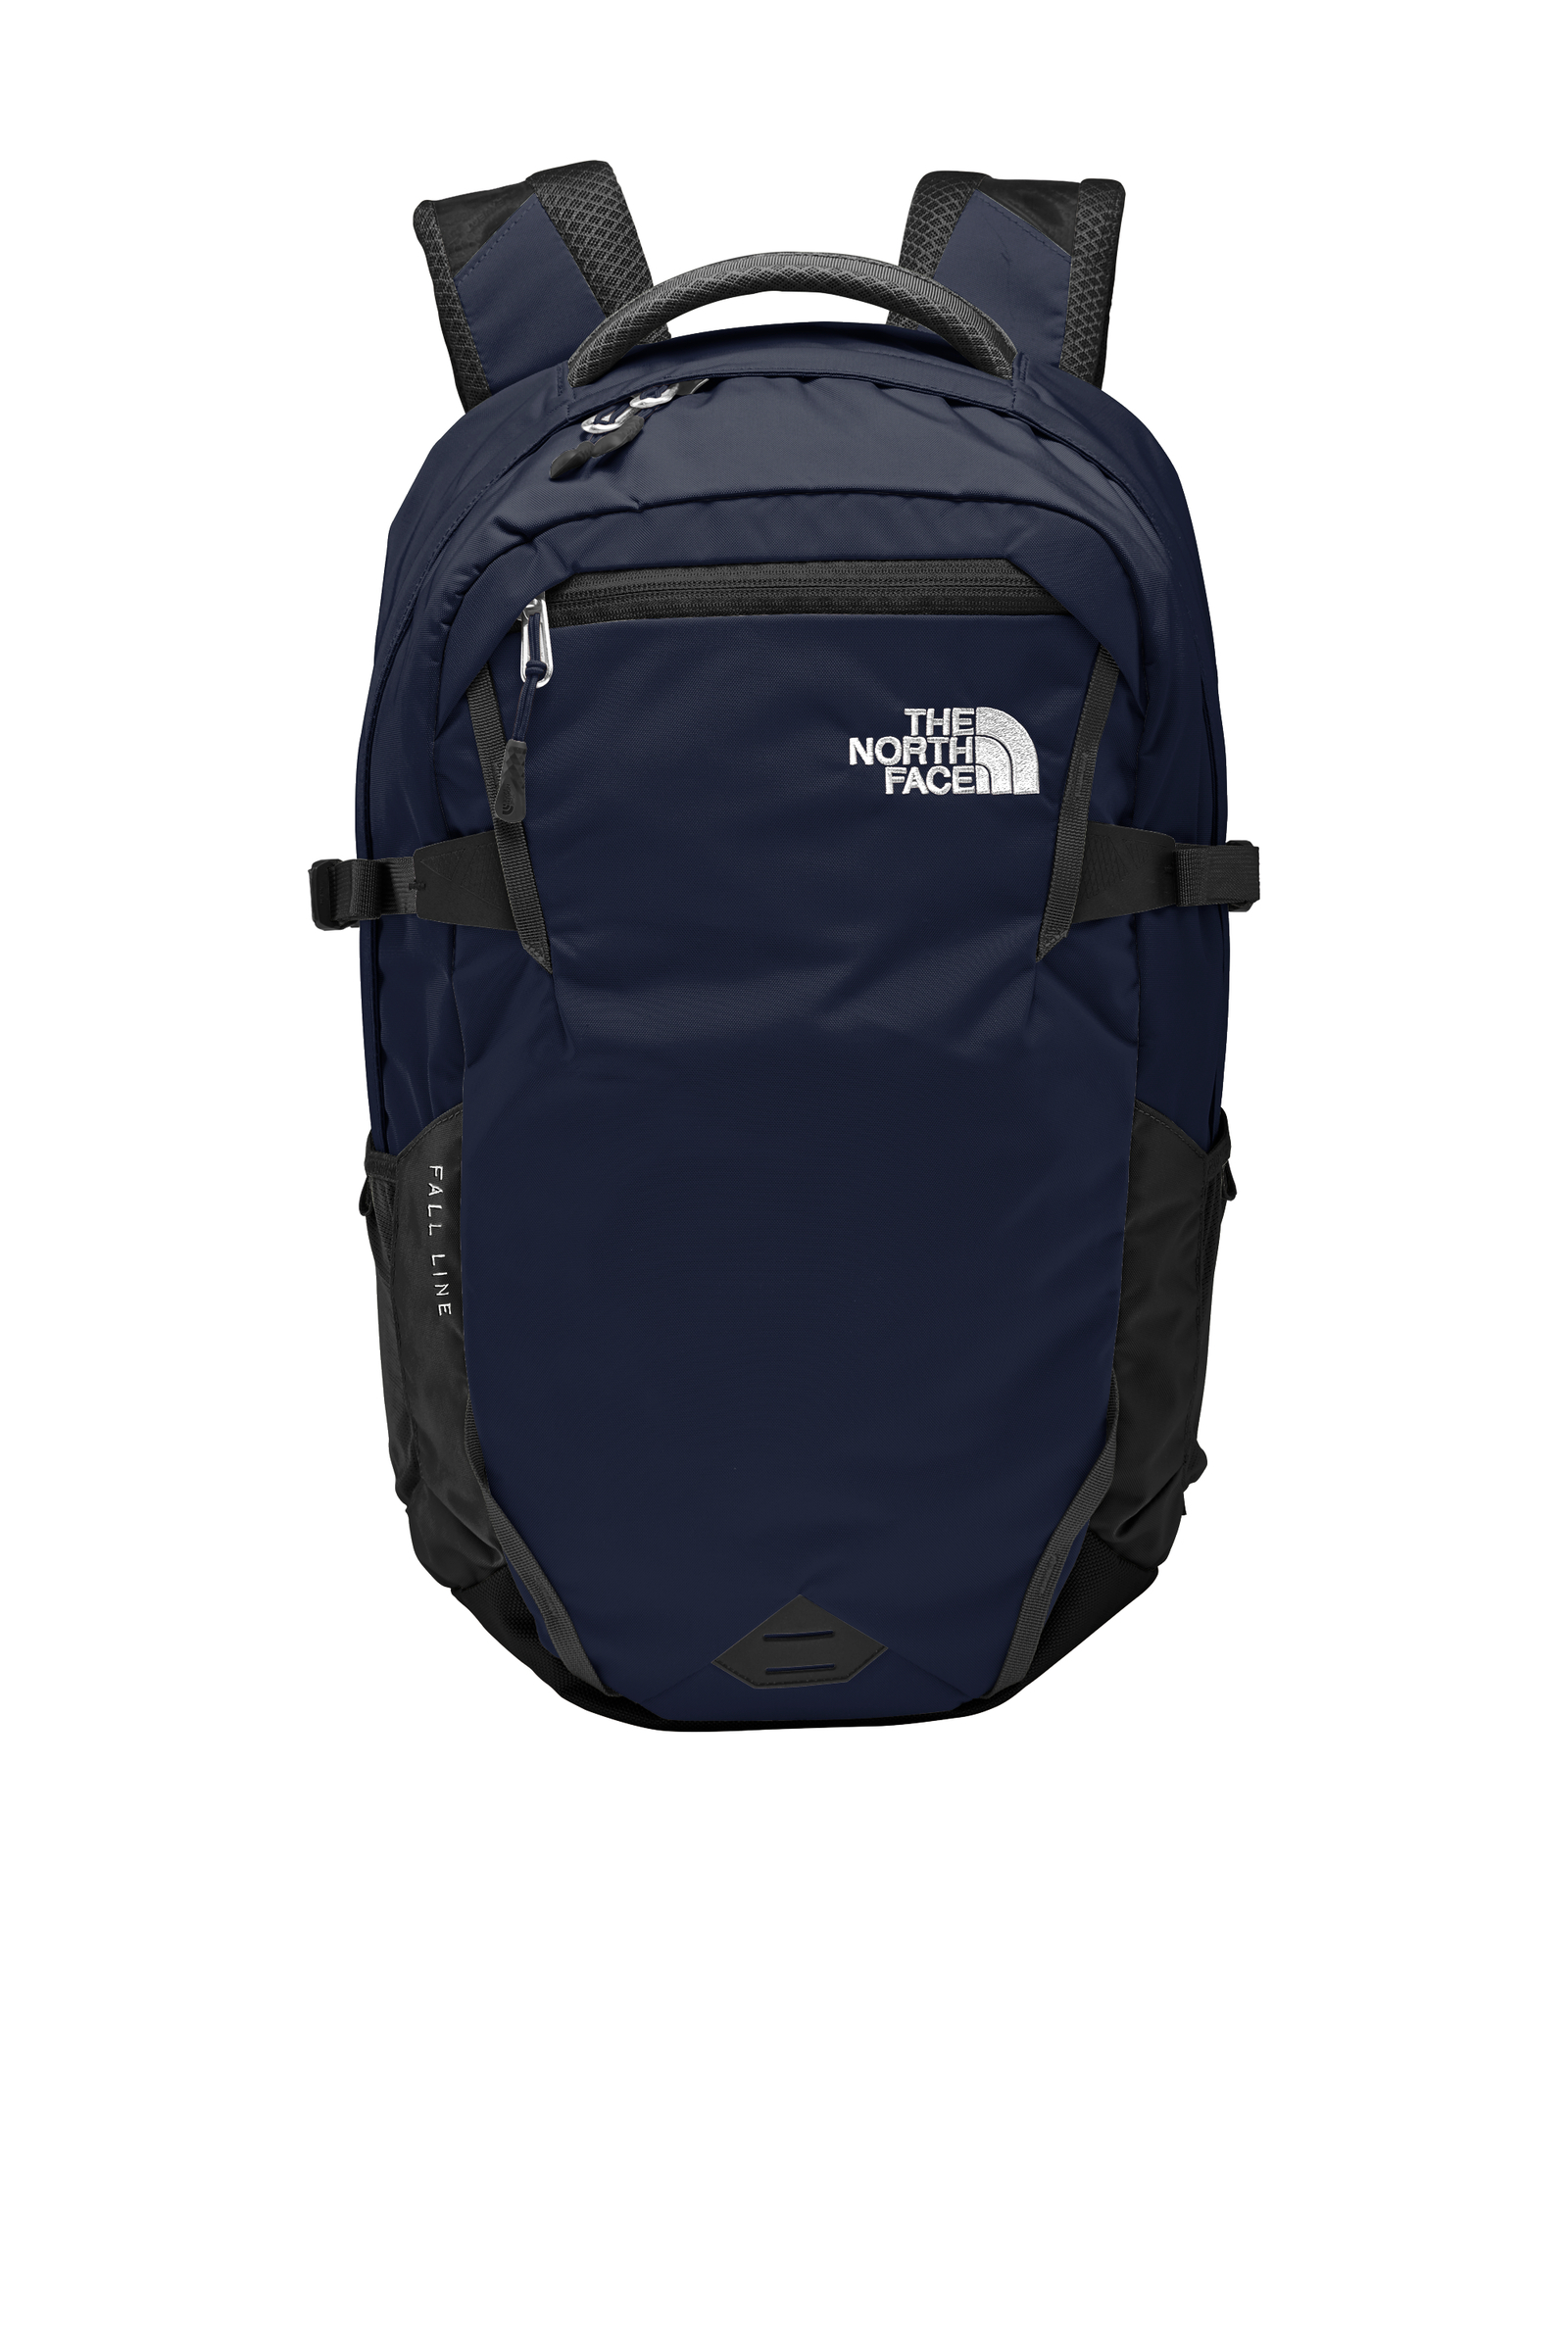 The North Face Embroidered Fall Line Backpack